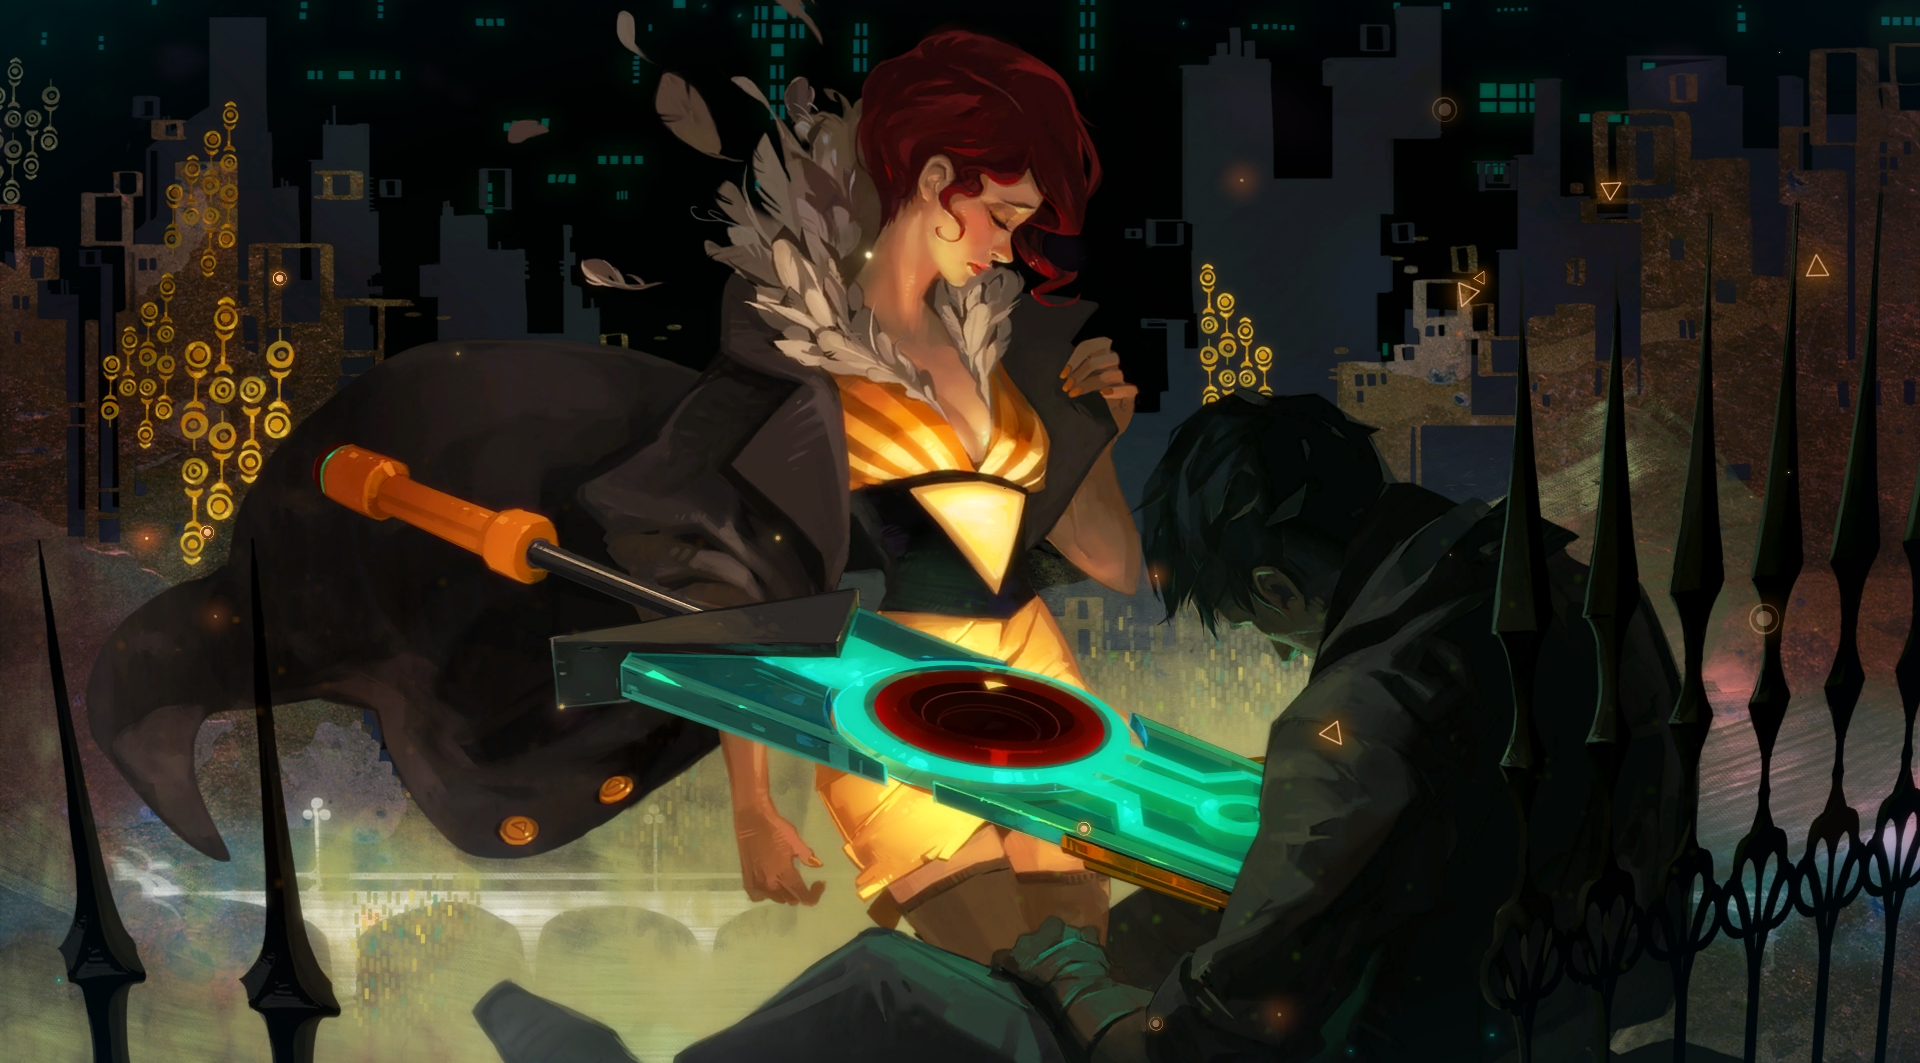 Transistor is a free download through the Epic Games Store until May 2